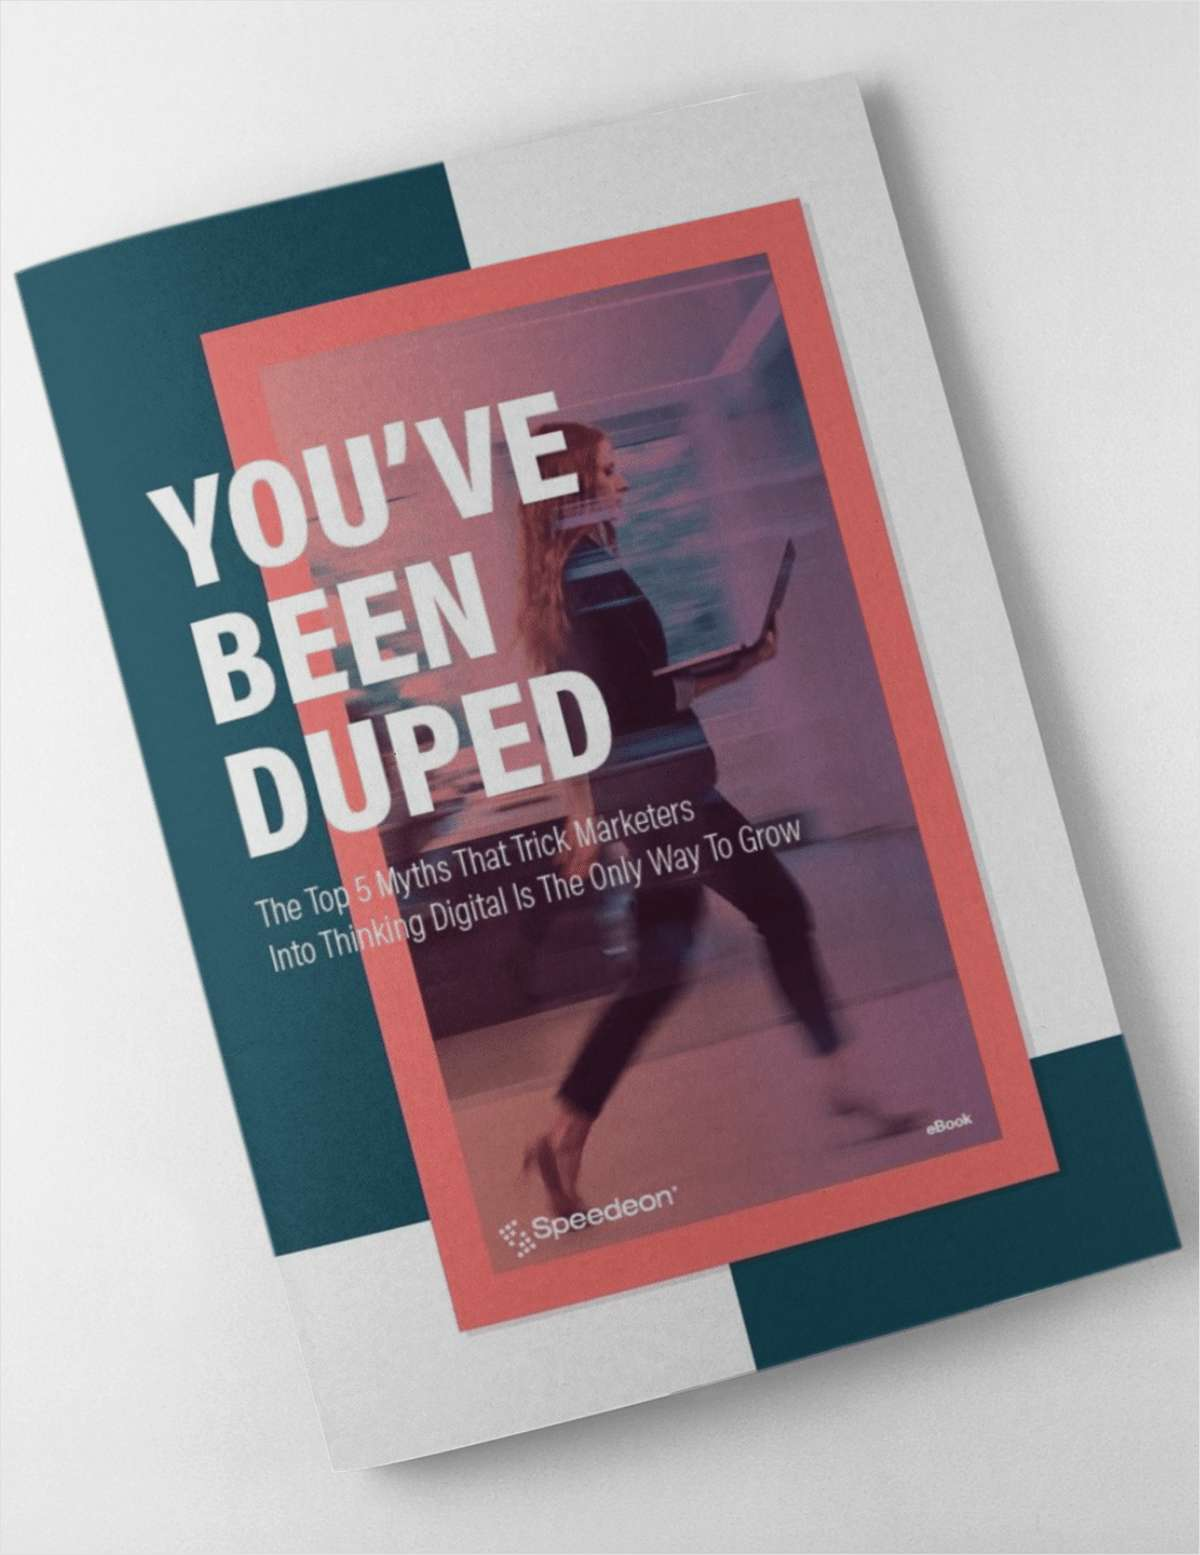 You've Been Duped: The Top 5 Myths that Trick D2C Marketers Into Thinking Digital Is the Only Way to Grow